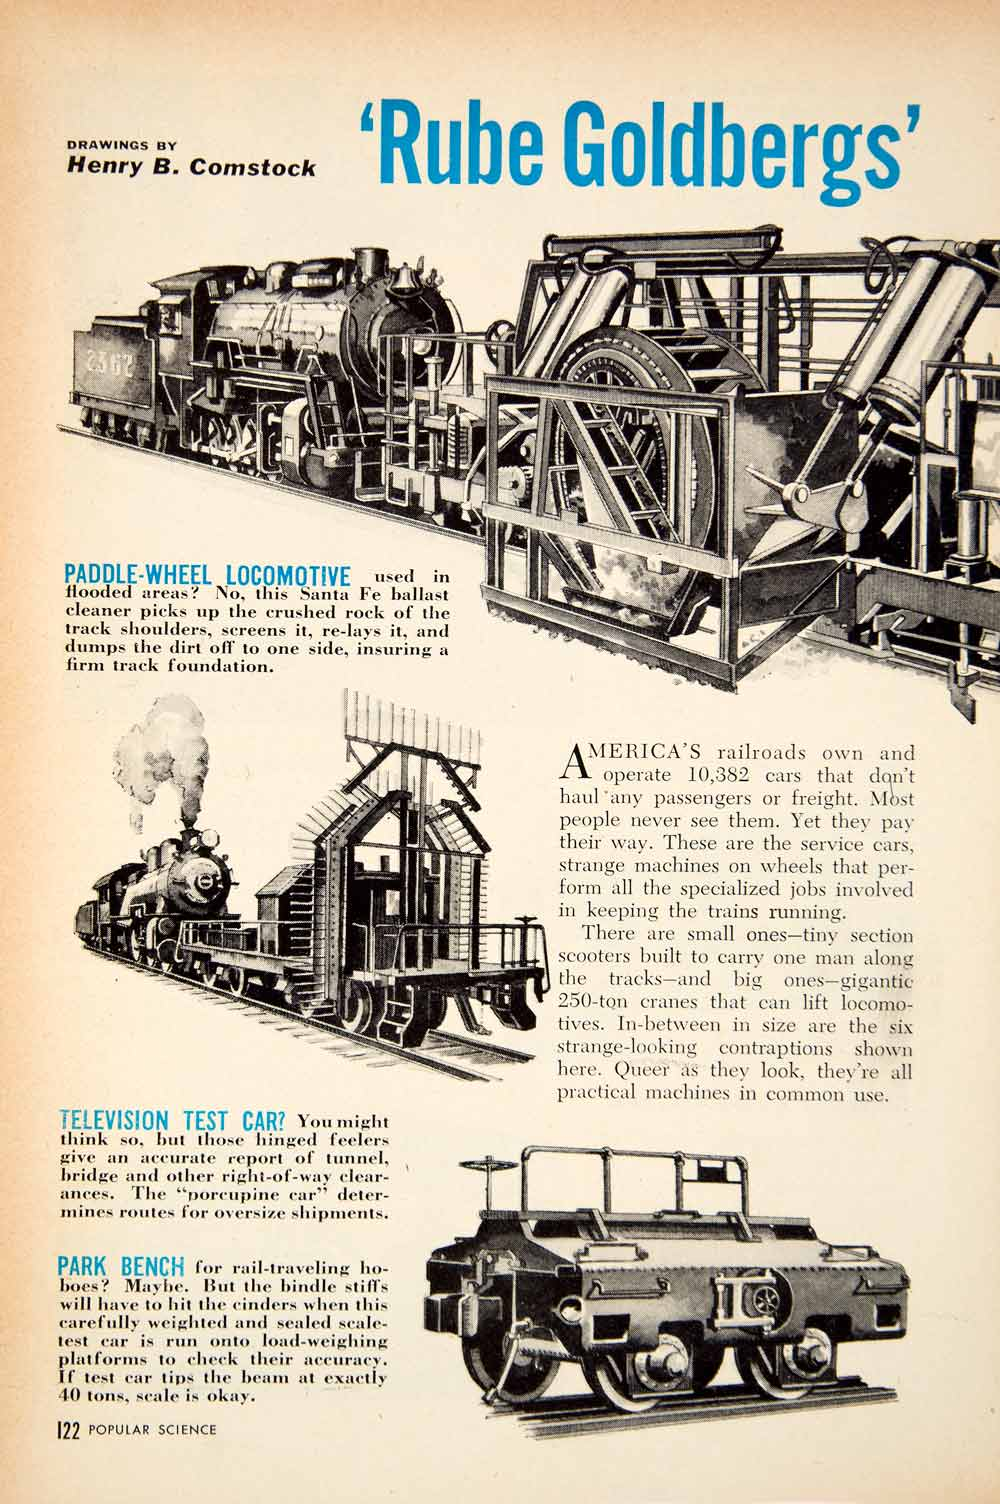 1952 Article Henry Comstock Rube Goldberg Railroad Cars Unusual Snow Plow PSC2